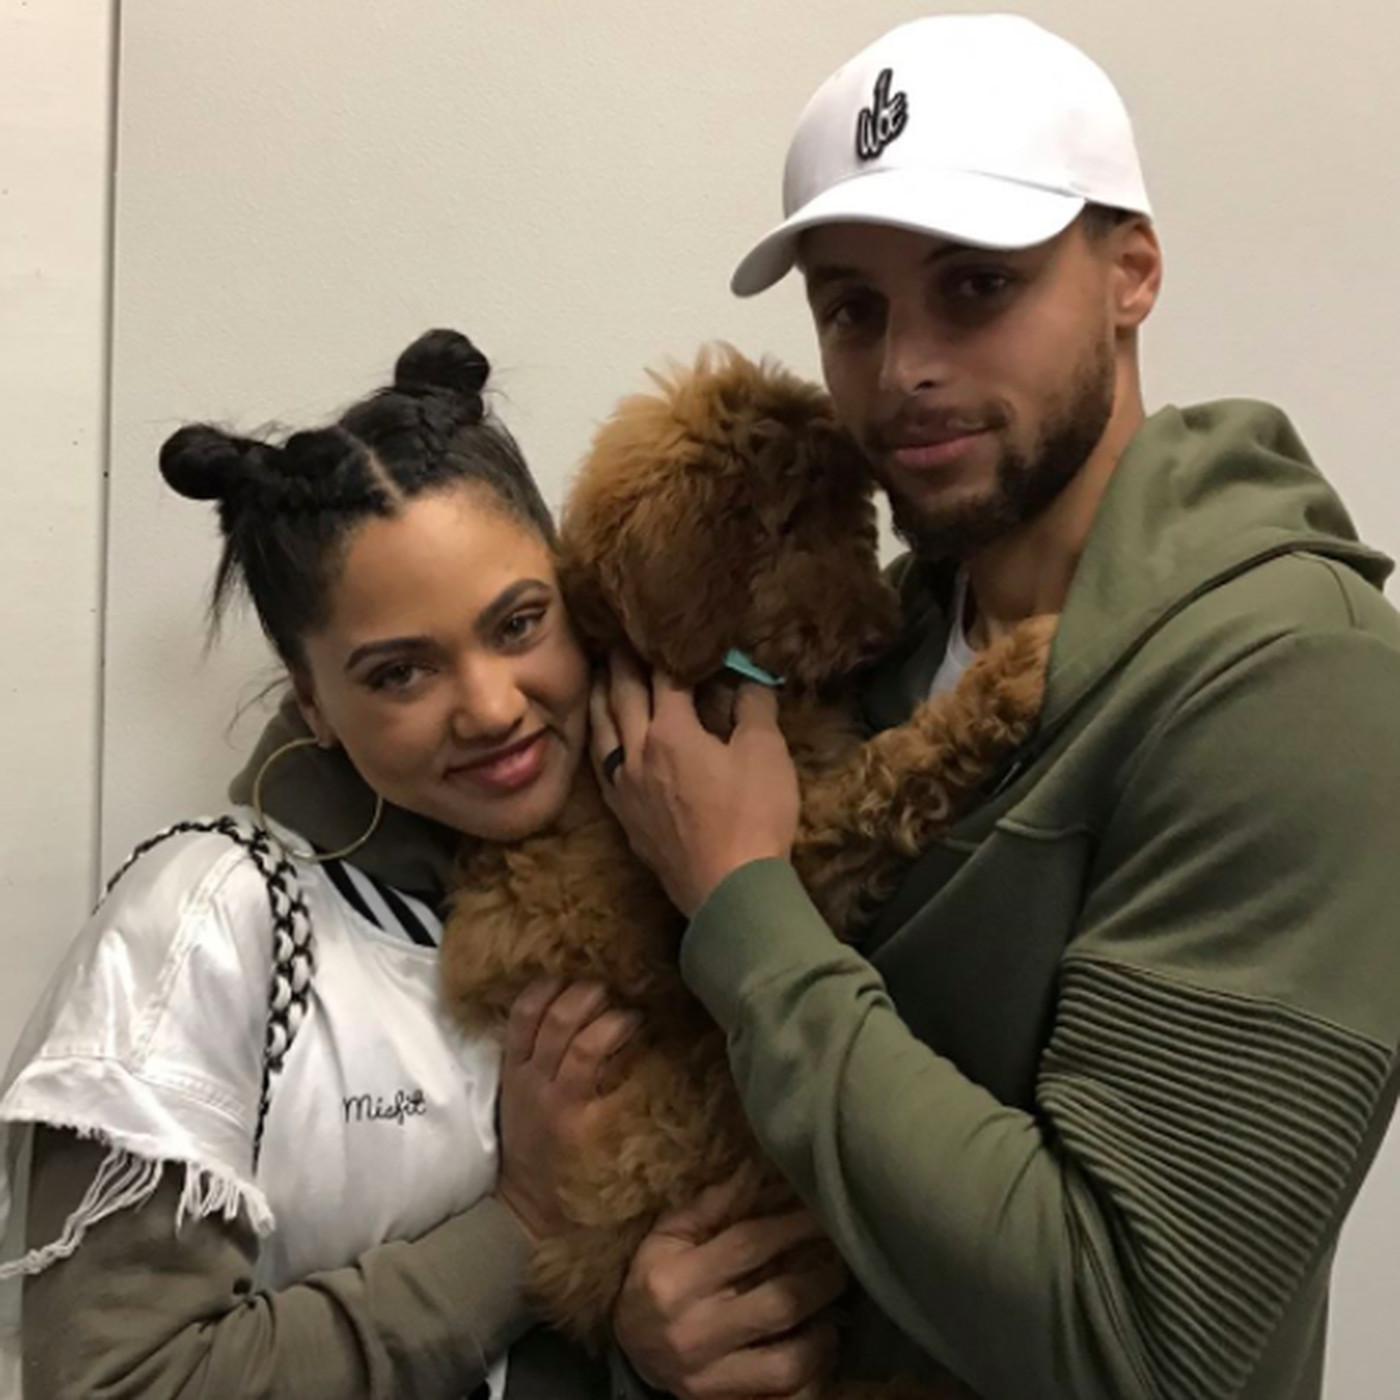 newest 8d542 33819 Steph Curry got a new dog and his name is Rookie - SBNation.com